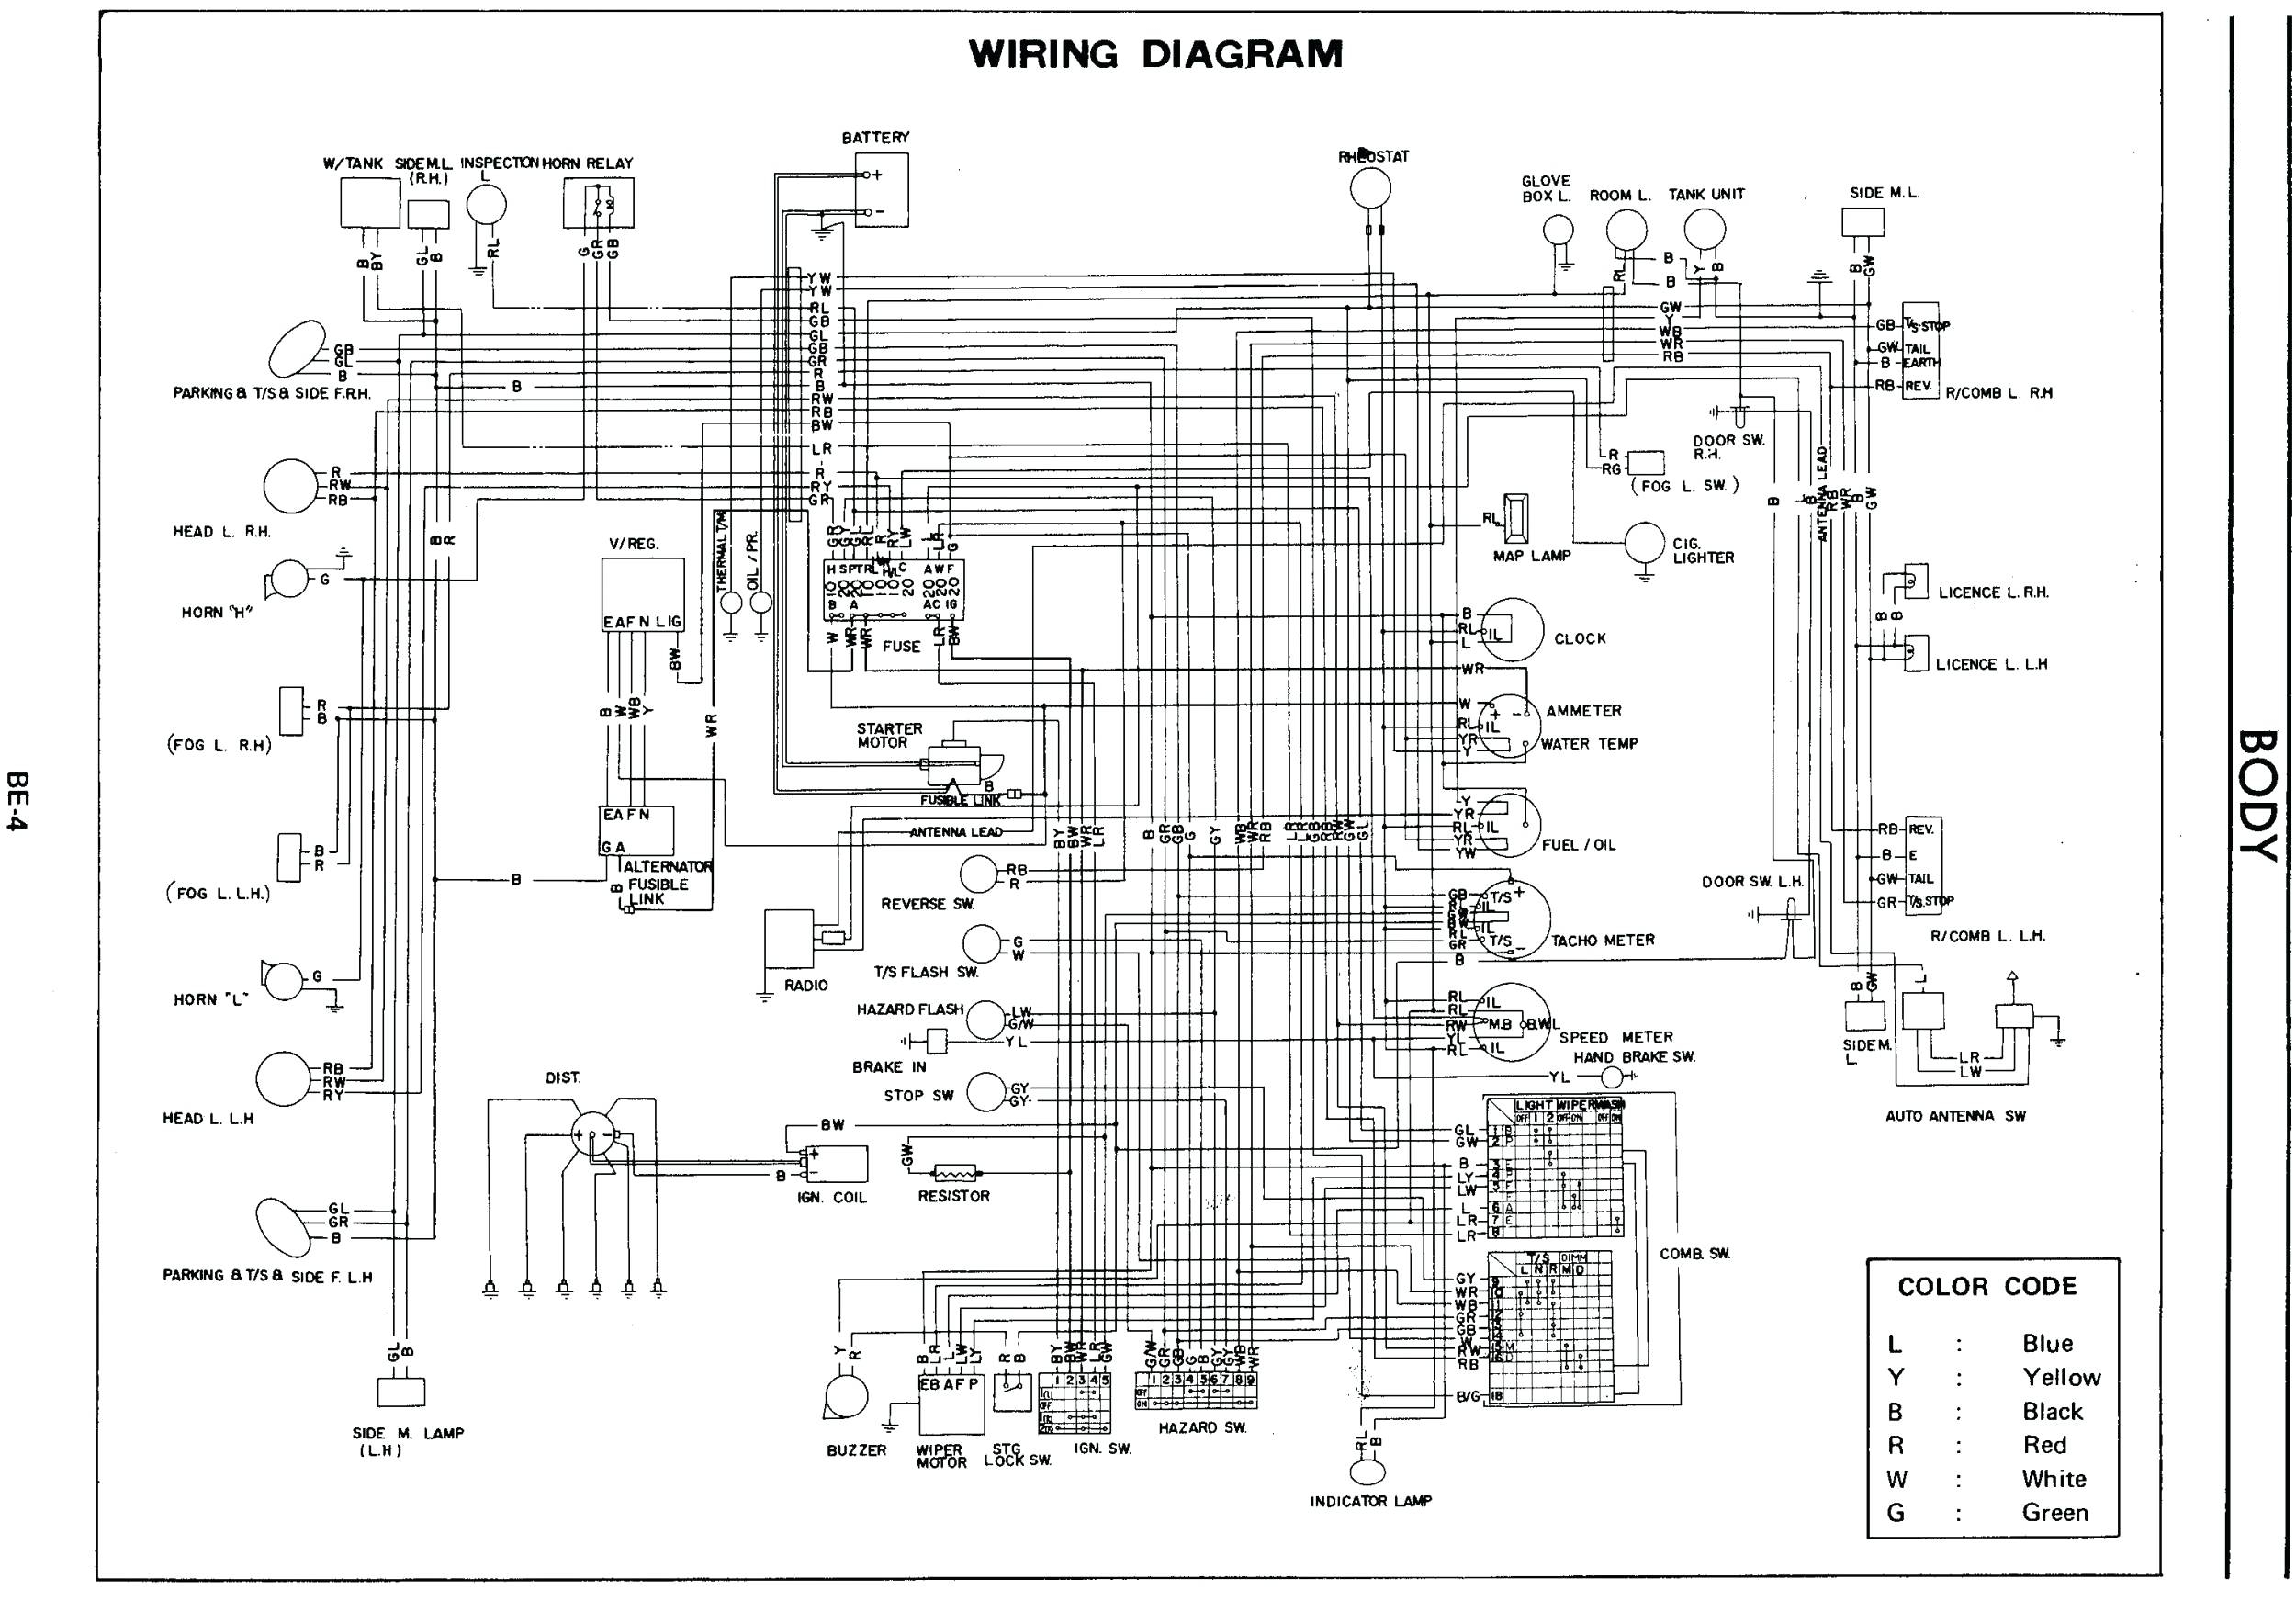 2010 mini cooper wiring diagram repair machine Lincoln Wiring Diagrams